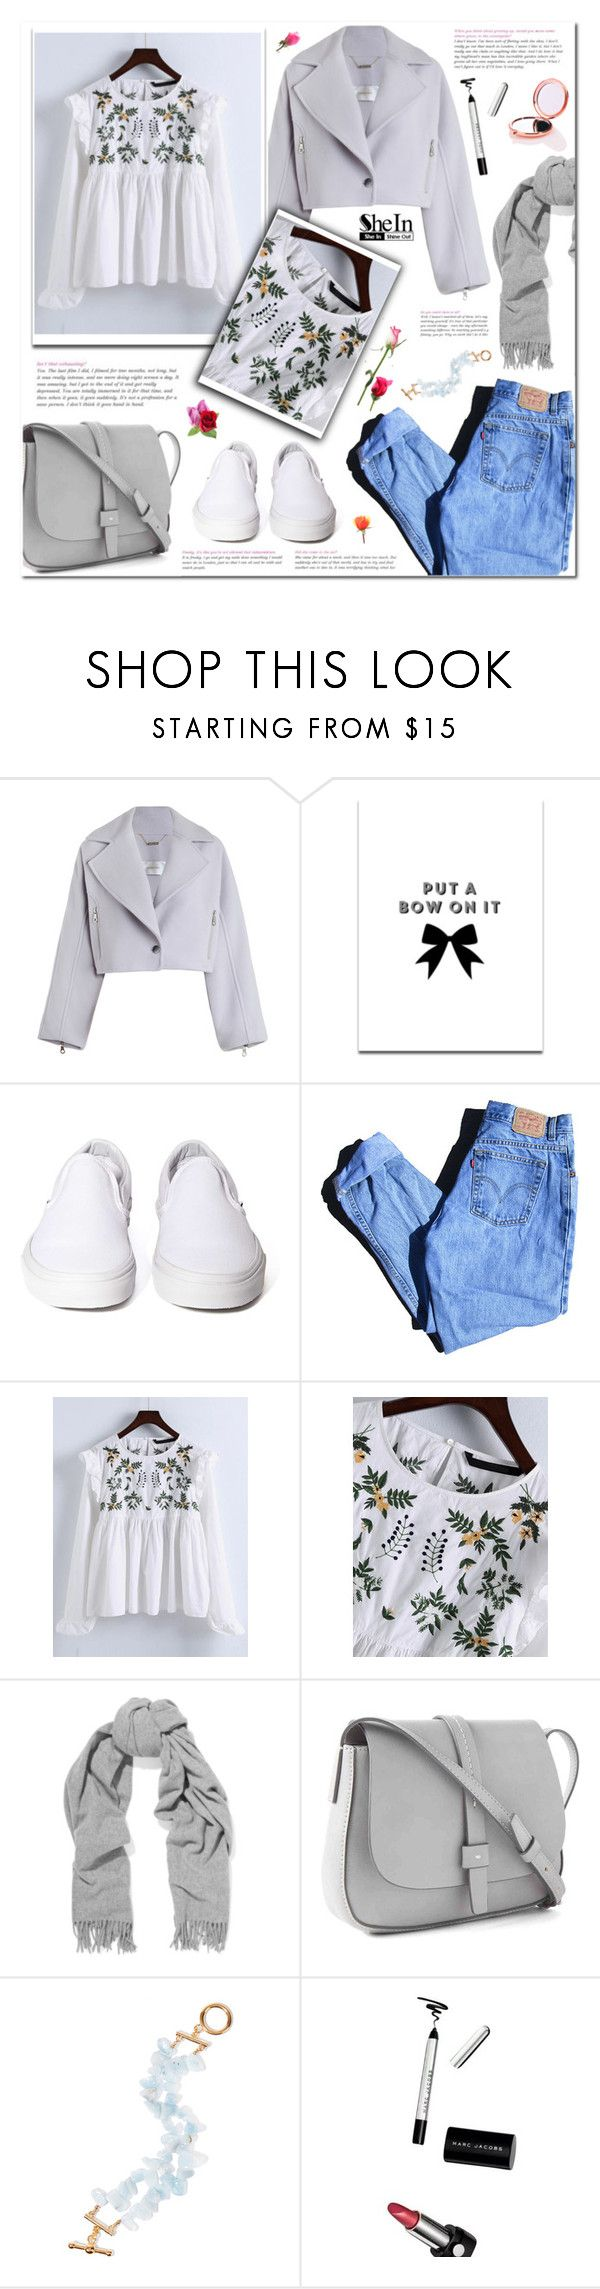 """Spring Trend: Embroidery"" by laurajanekatriina ❤ liked on Polyvore featuring Zimmermann, SS Print Shop, Vans, Levi's, Acne Studios, Gap, Kenneth Jay Lane and Skinnydip"